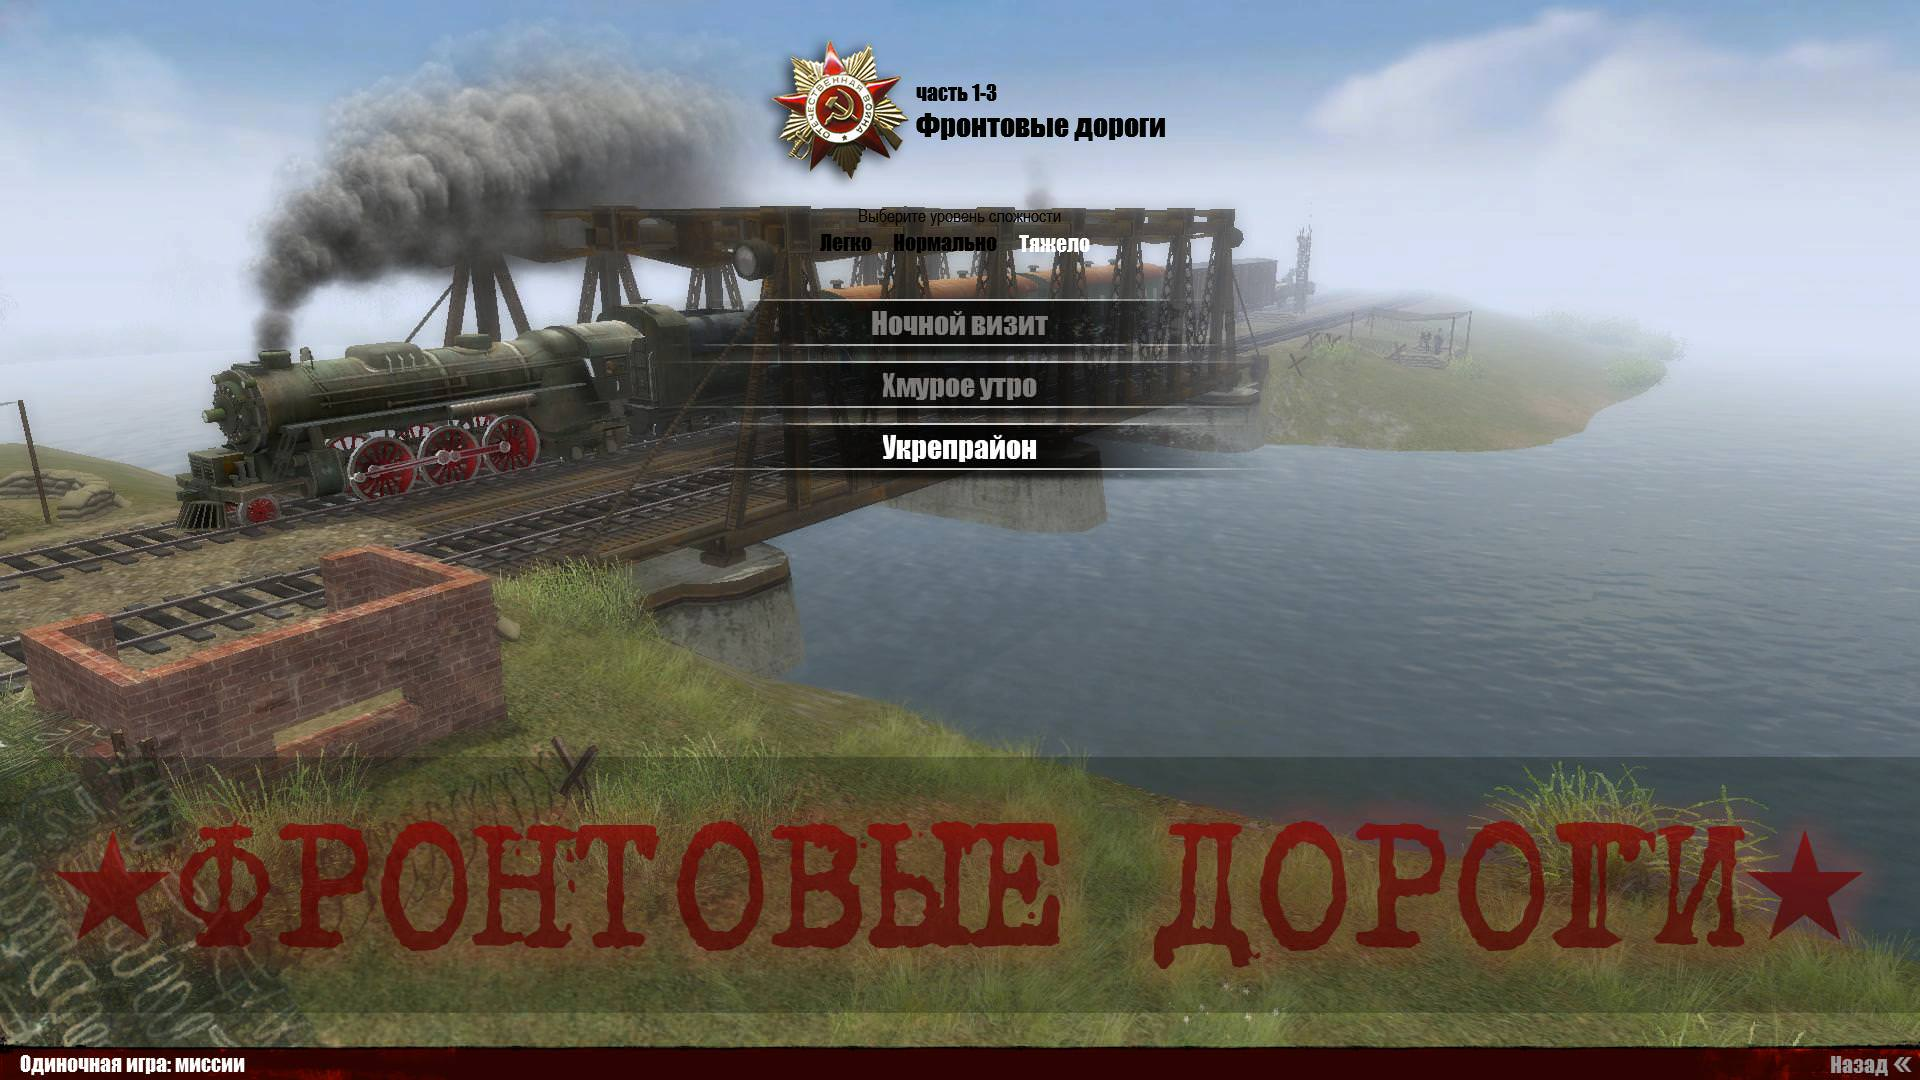 Скачать Фронтовые дороги 3_(мод для Men Of War v1.02.0) — бесплатно